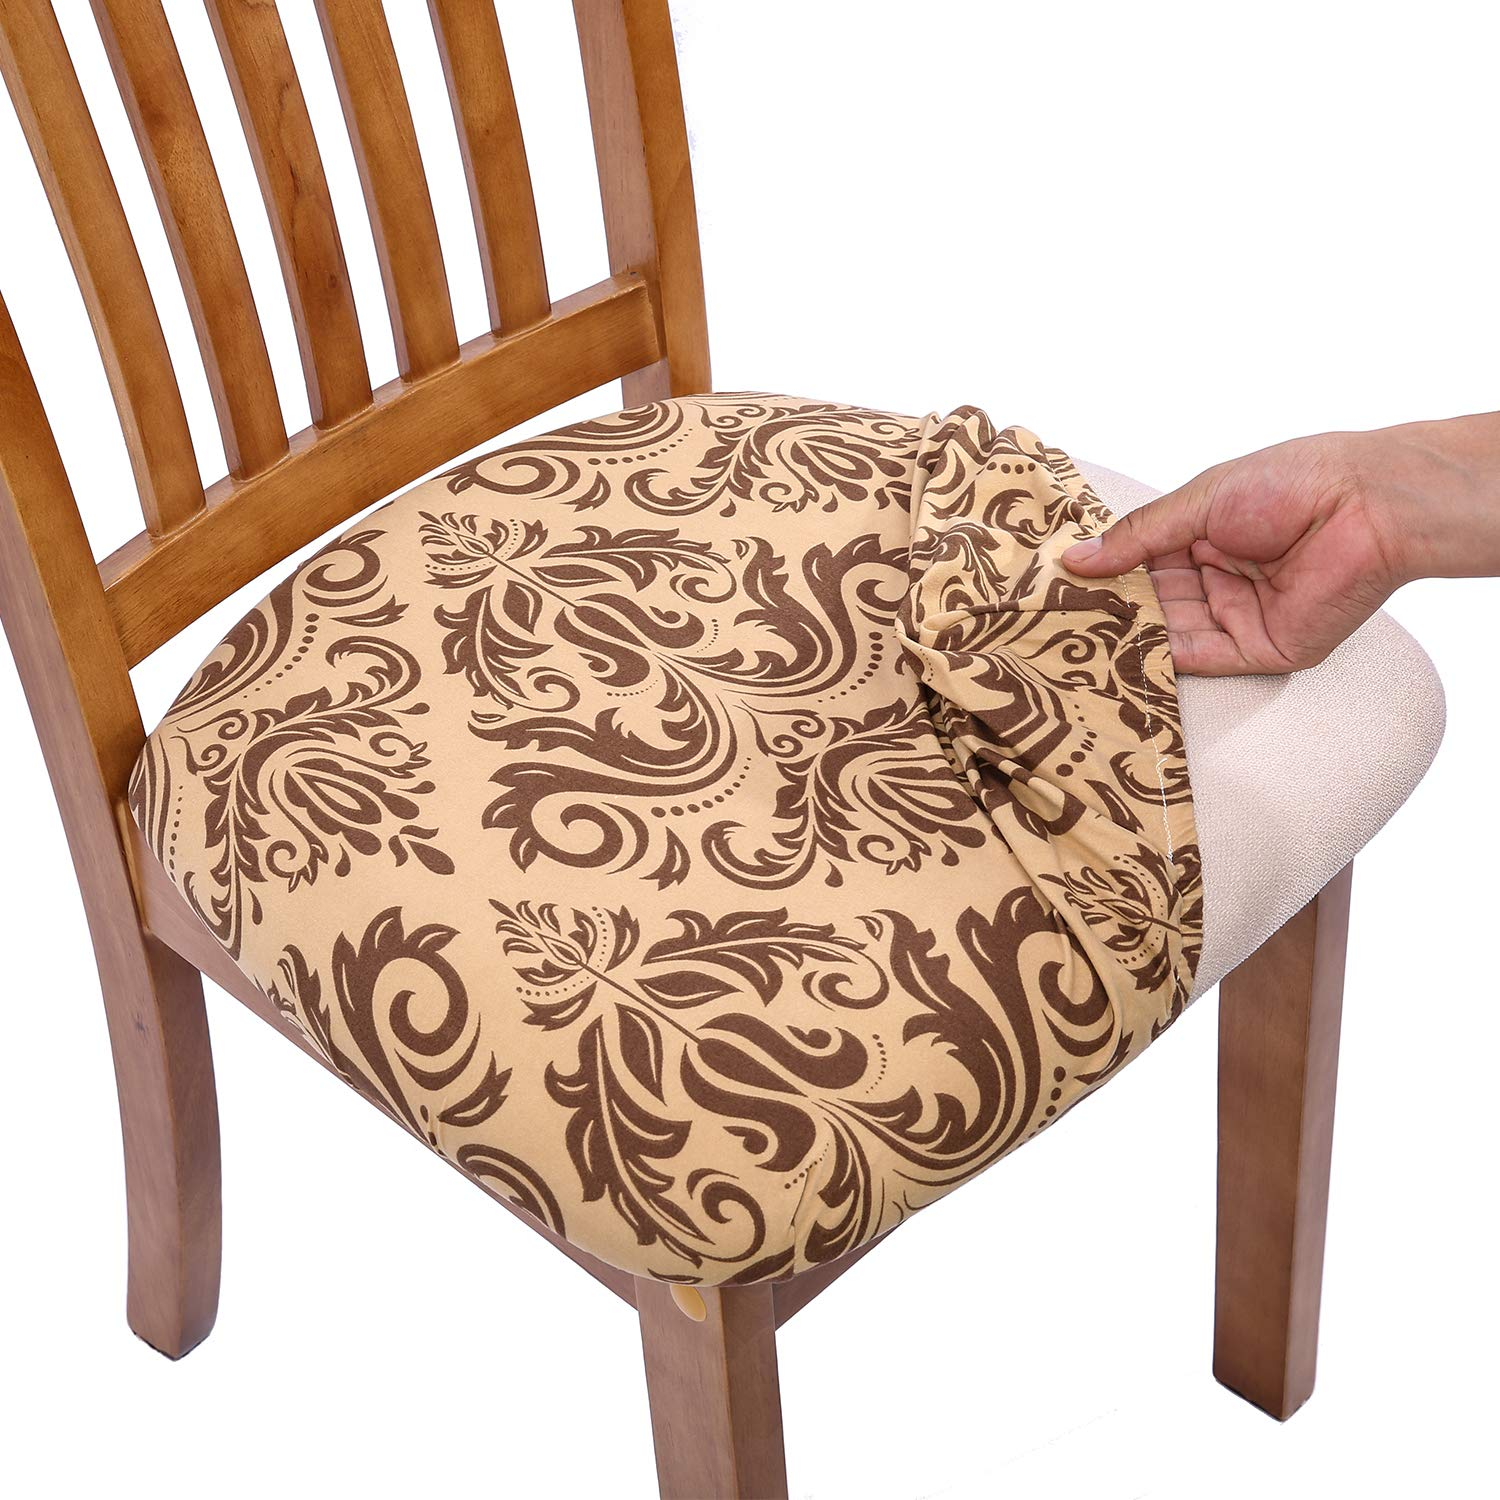 Superb Comqualife Stretch Printed Dining Chair Seat Covers Removable Washable Anti Dust Upholstered Chair Seat Cover For Dining Room Kitchen Office Set Alphanode Cool Chair Designs And Ideas Alphanodeonline